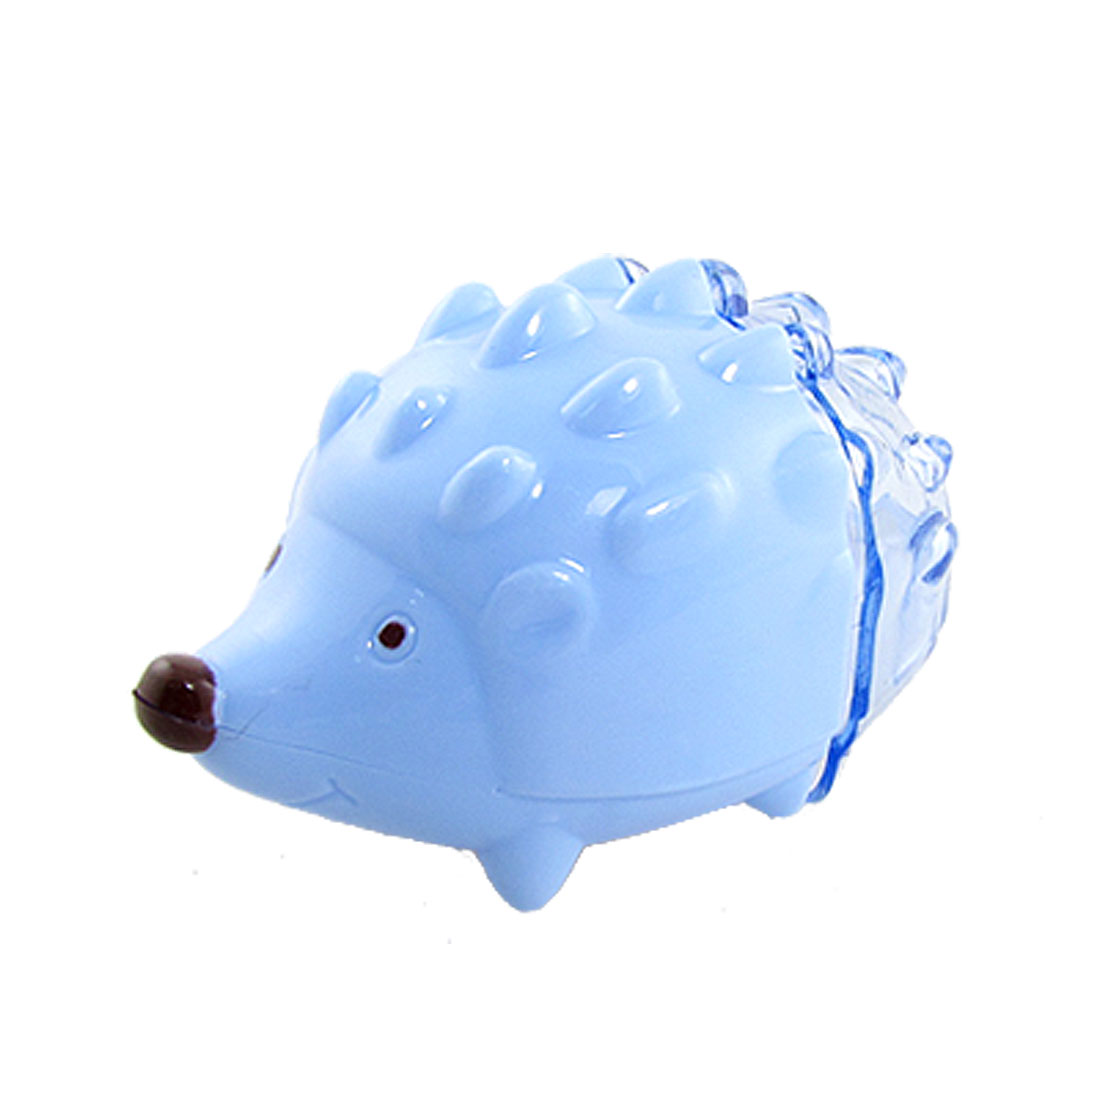 2 Pcs Blue Cute Hedgehog Shaped Double Holes Pencil Sharpener